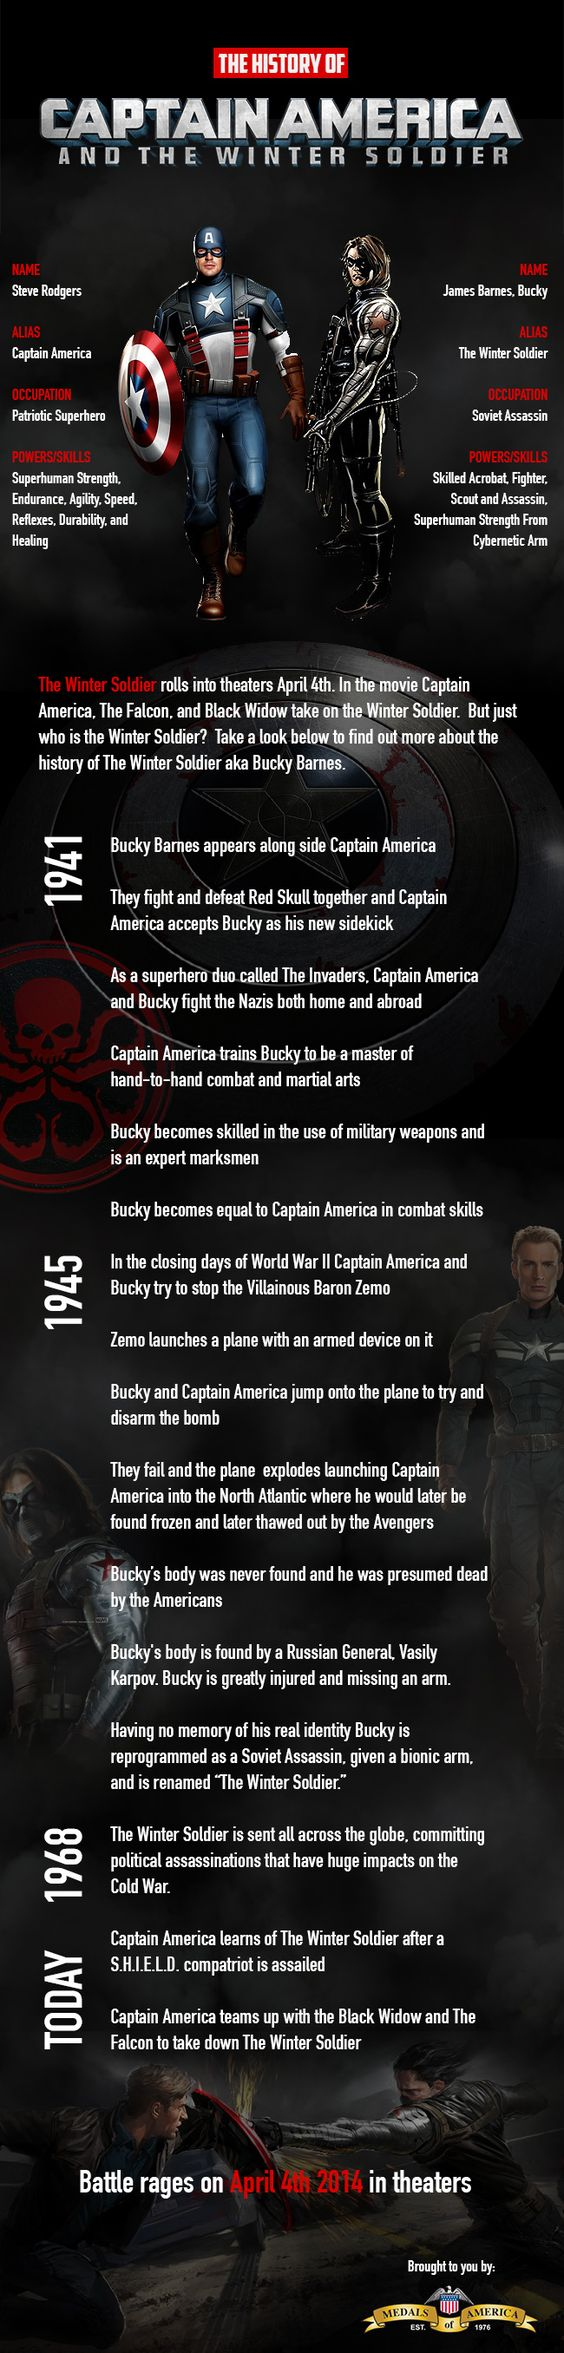 The History of #CaptainAmerica and The Winter Soldier! #Infographic #marvel